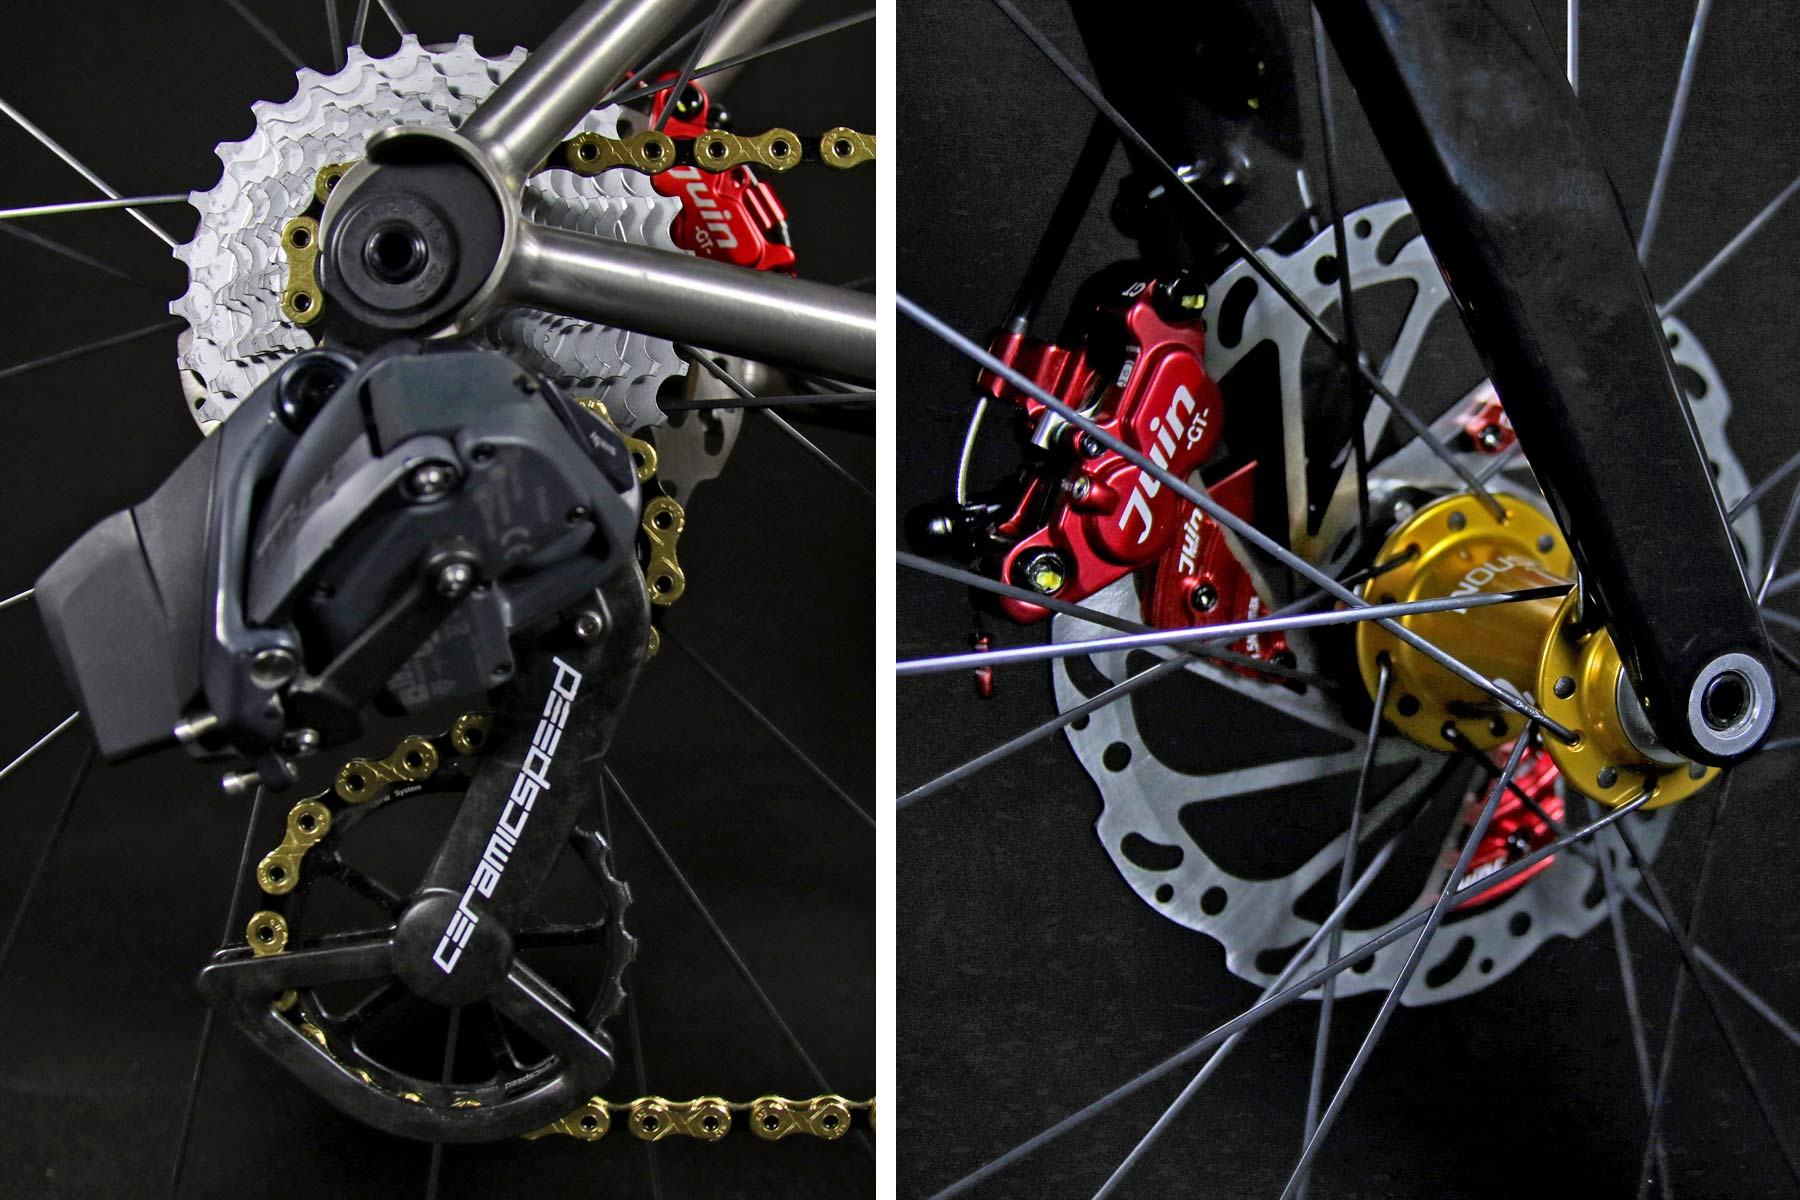 TRed Arcanide A03 Venti to road bike, fully-integrated internal cable routing custom titanium road bike,build details